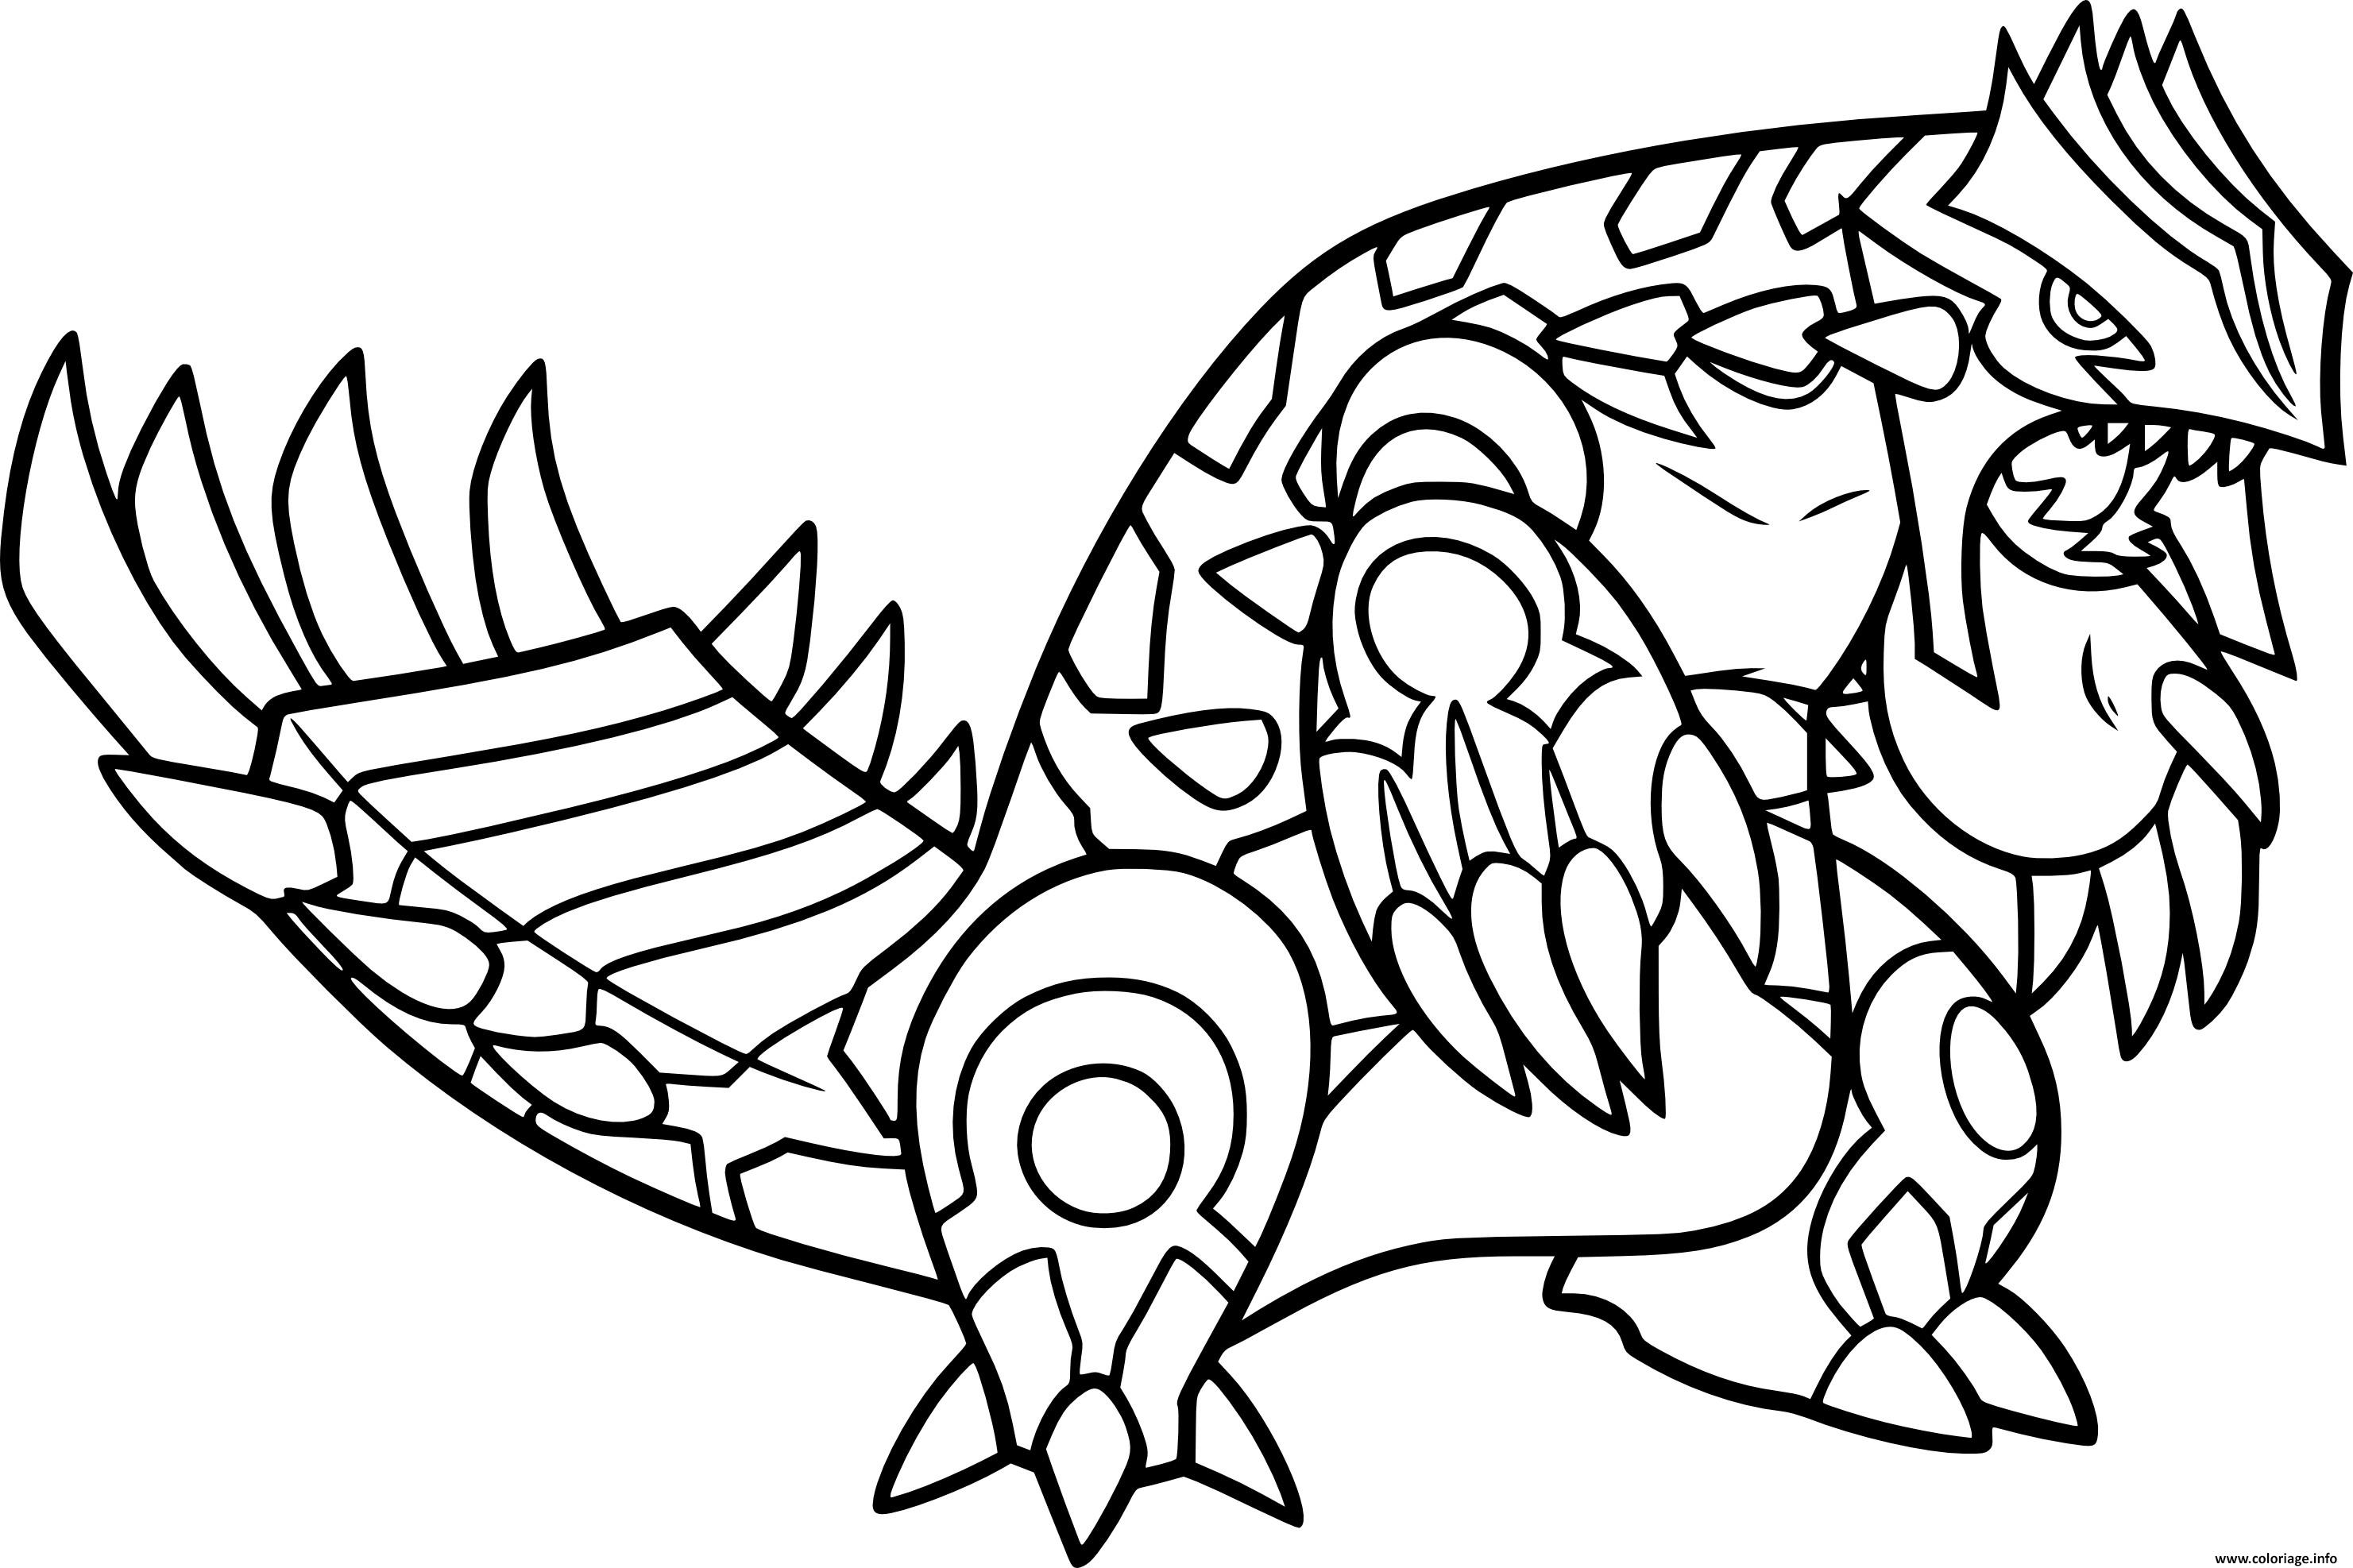 Coloriage pokemon legendaire - Coloriage pokemon legendaire a imprimer ...